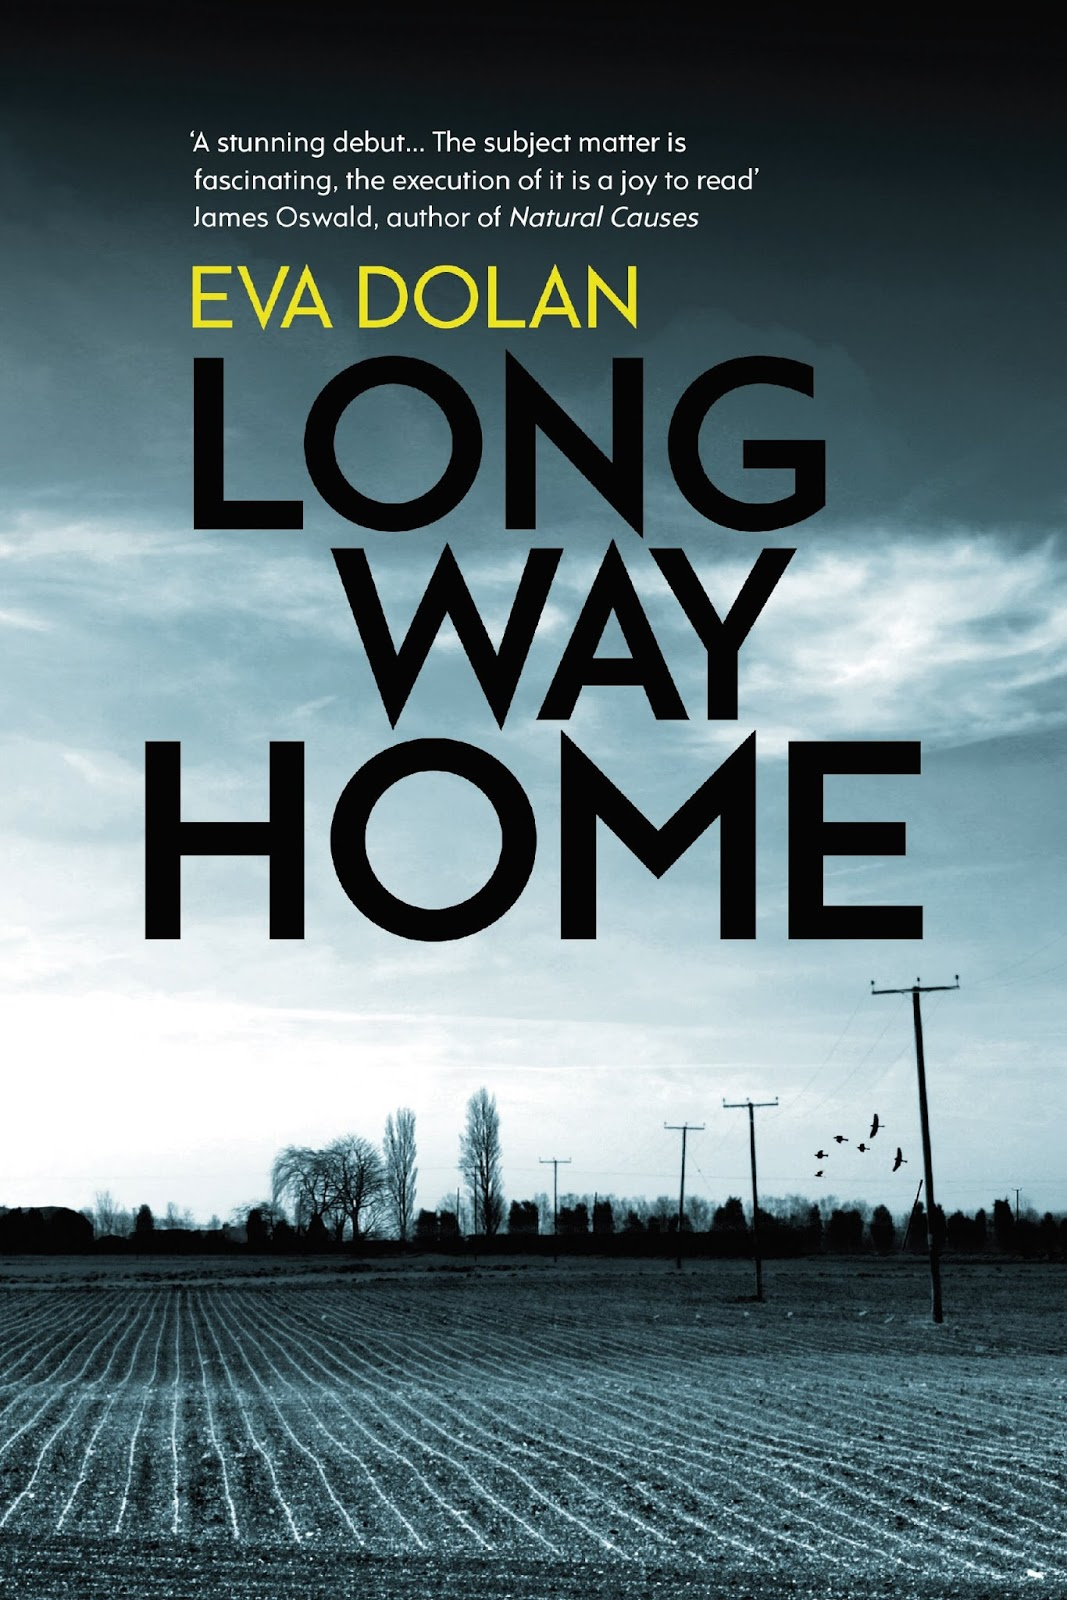 Long Way Home by Eva Dolan